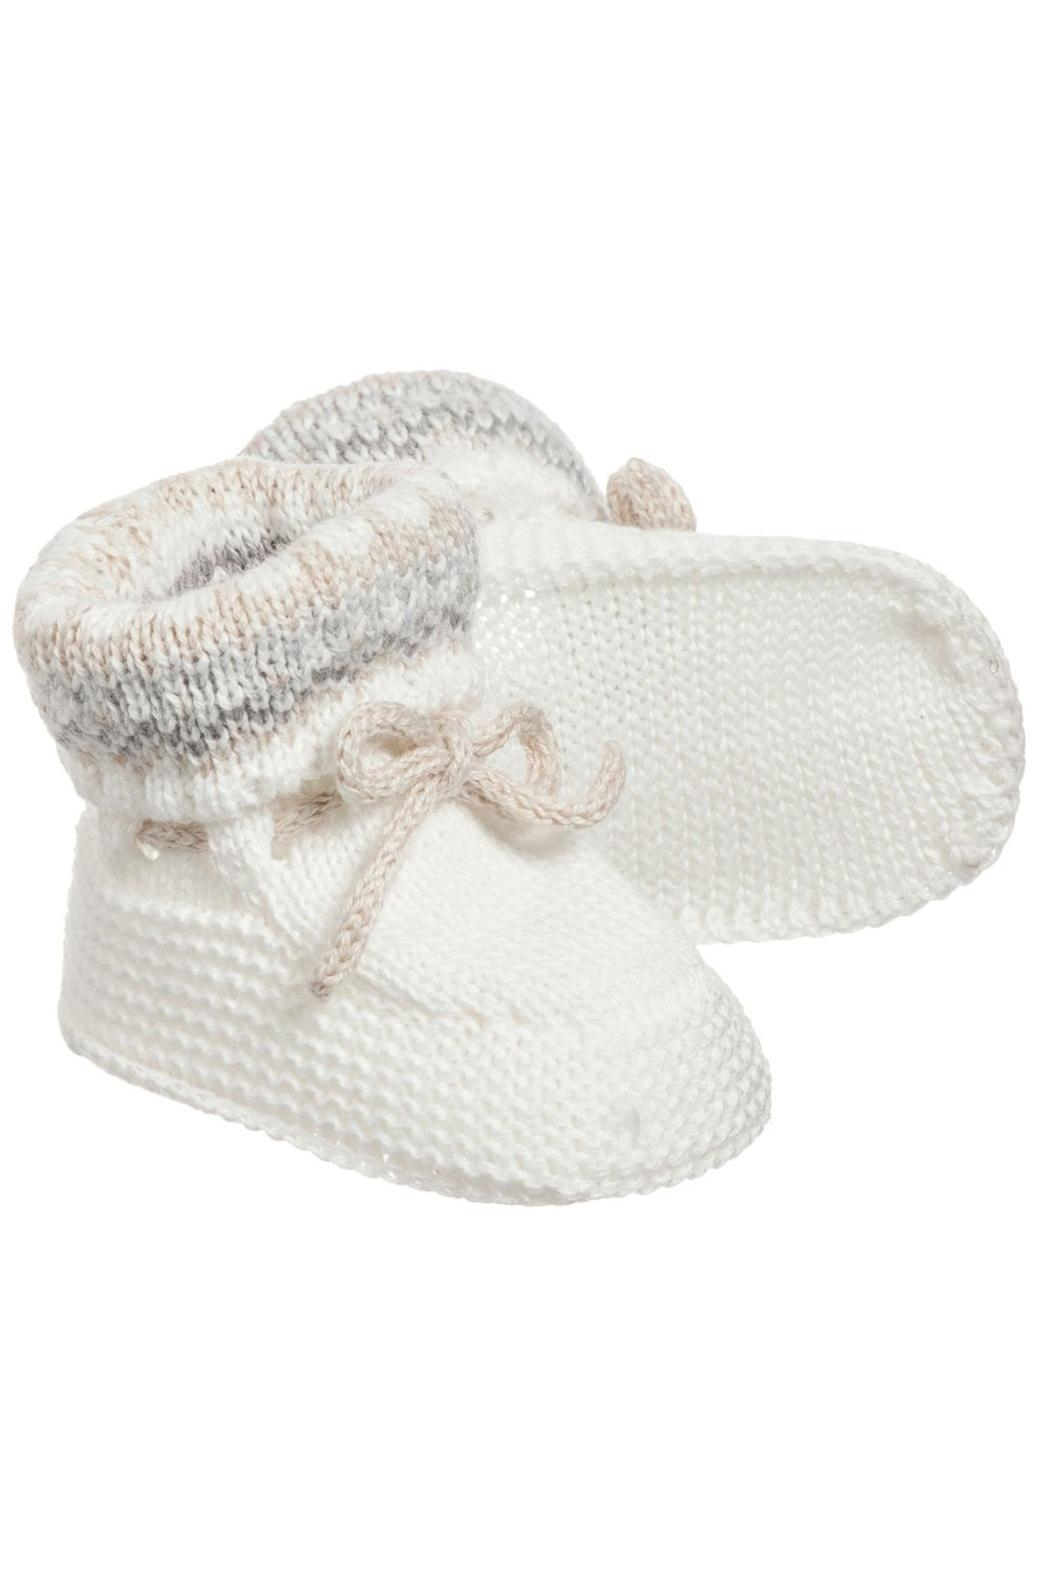 Mayoral Ivory Knit Booties - Main Image